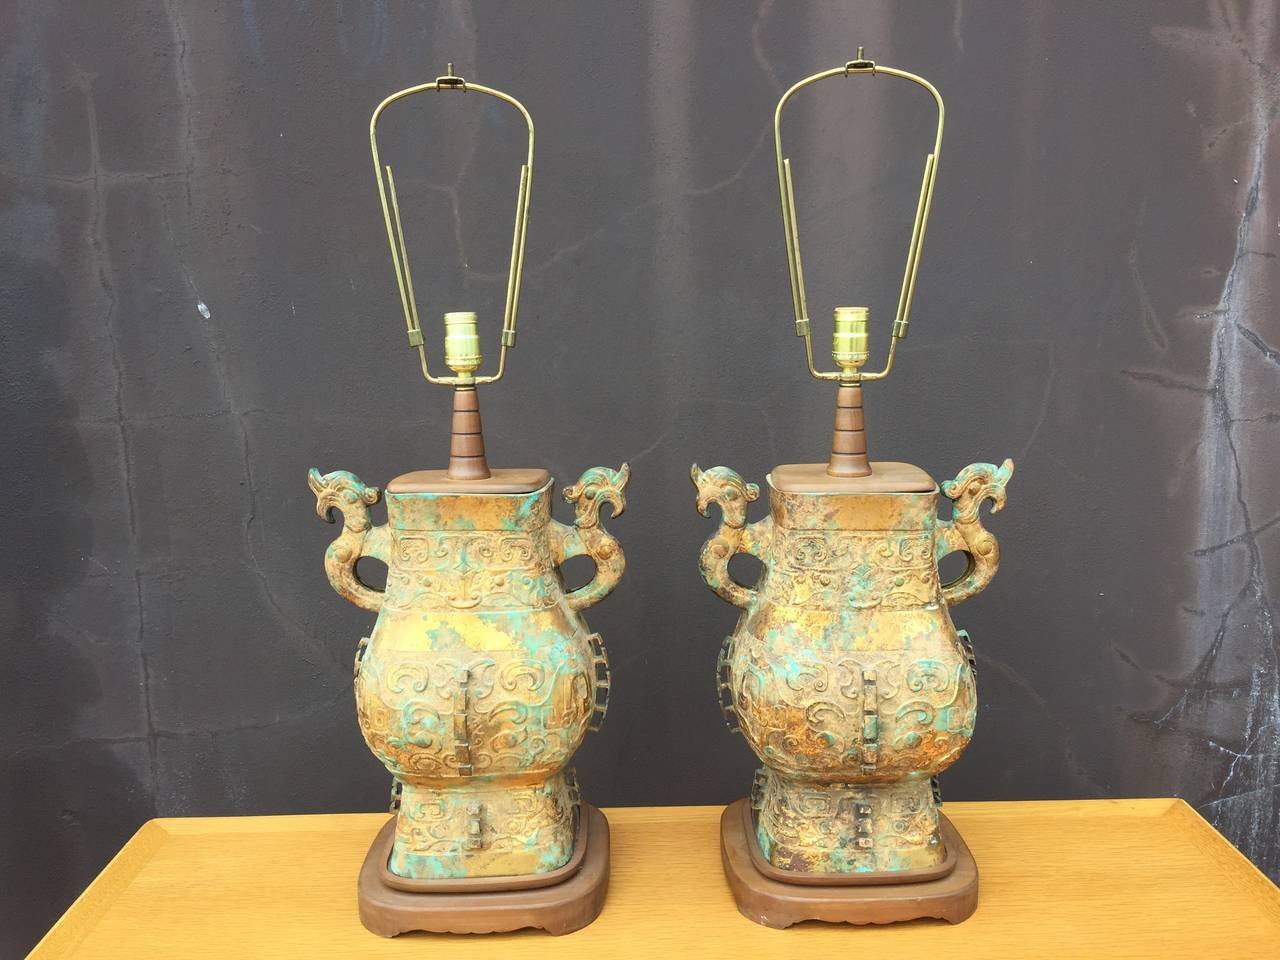 Intricate details and a wonderful verdigris camouflage pattern on brass bases. Body of lamp is 20.25 inches tall.